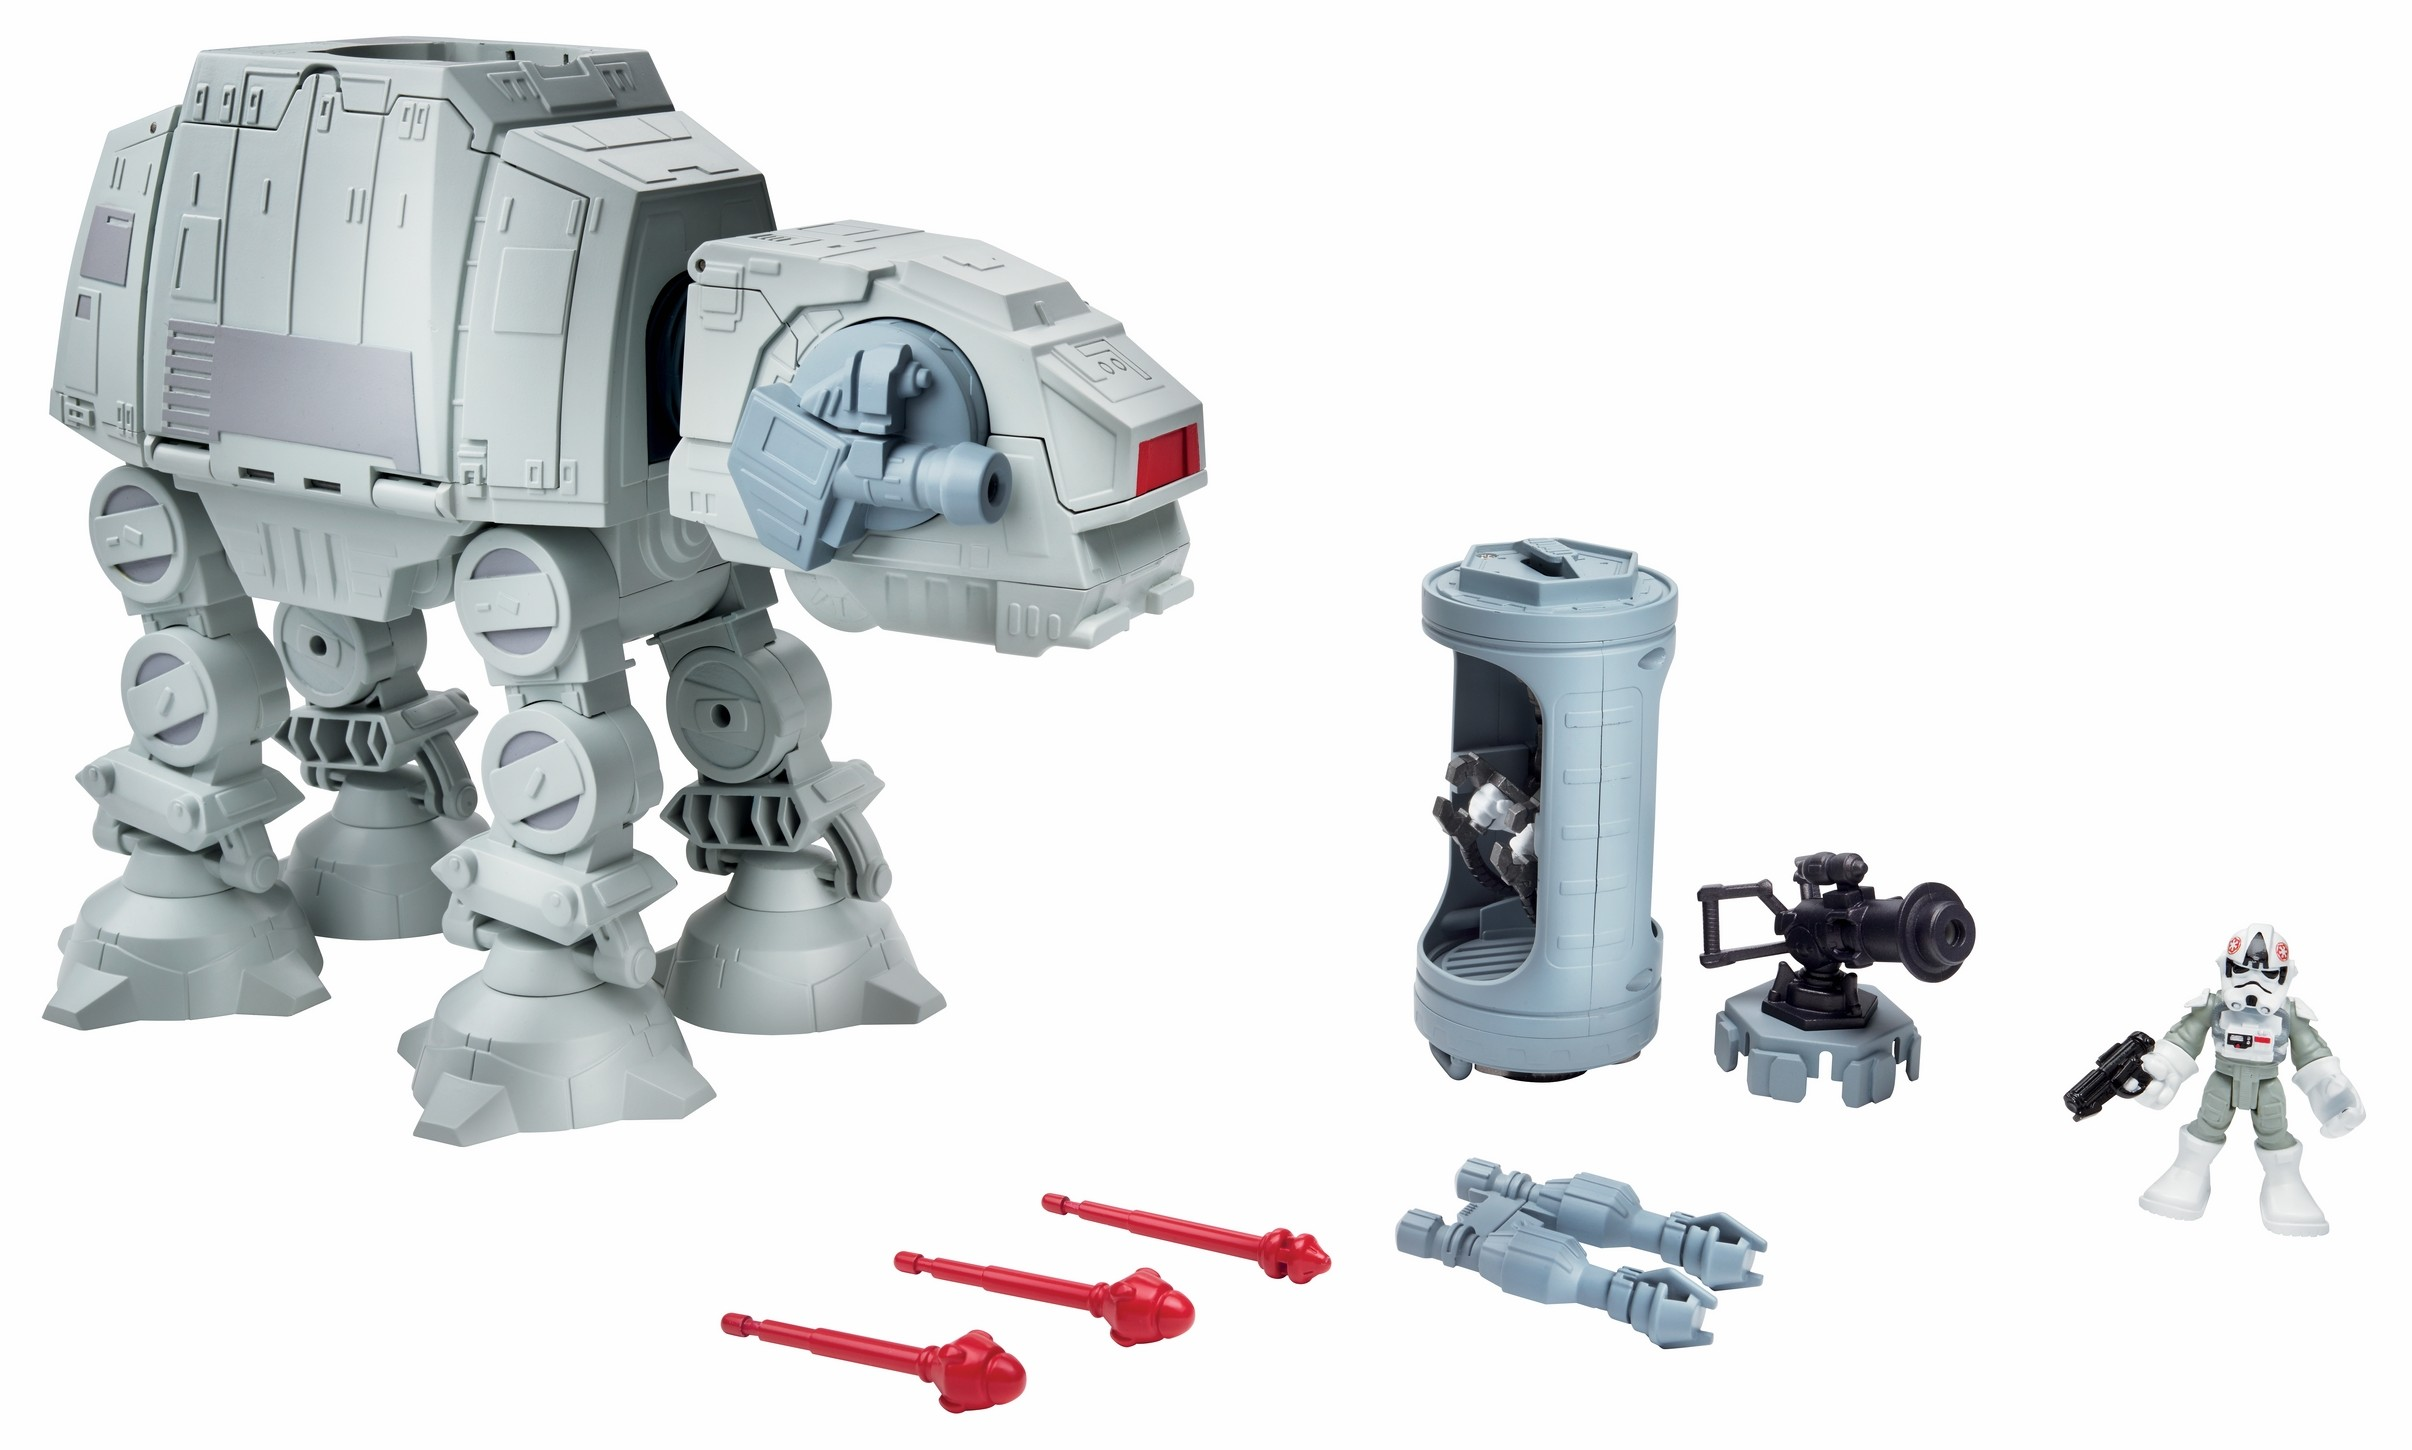 The Empire Strikes Back PlaySkool Galactic Heroes Imperial AT-AT Walker Set